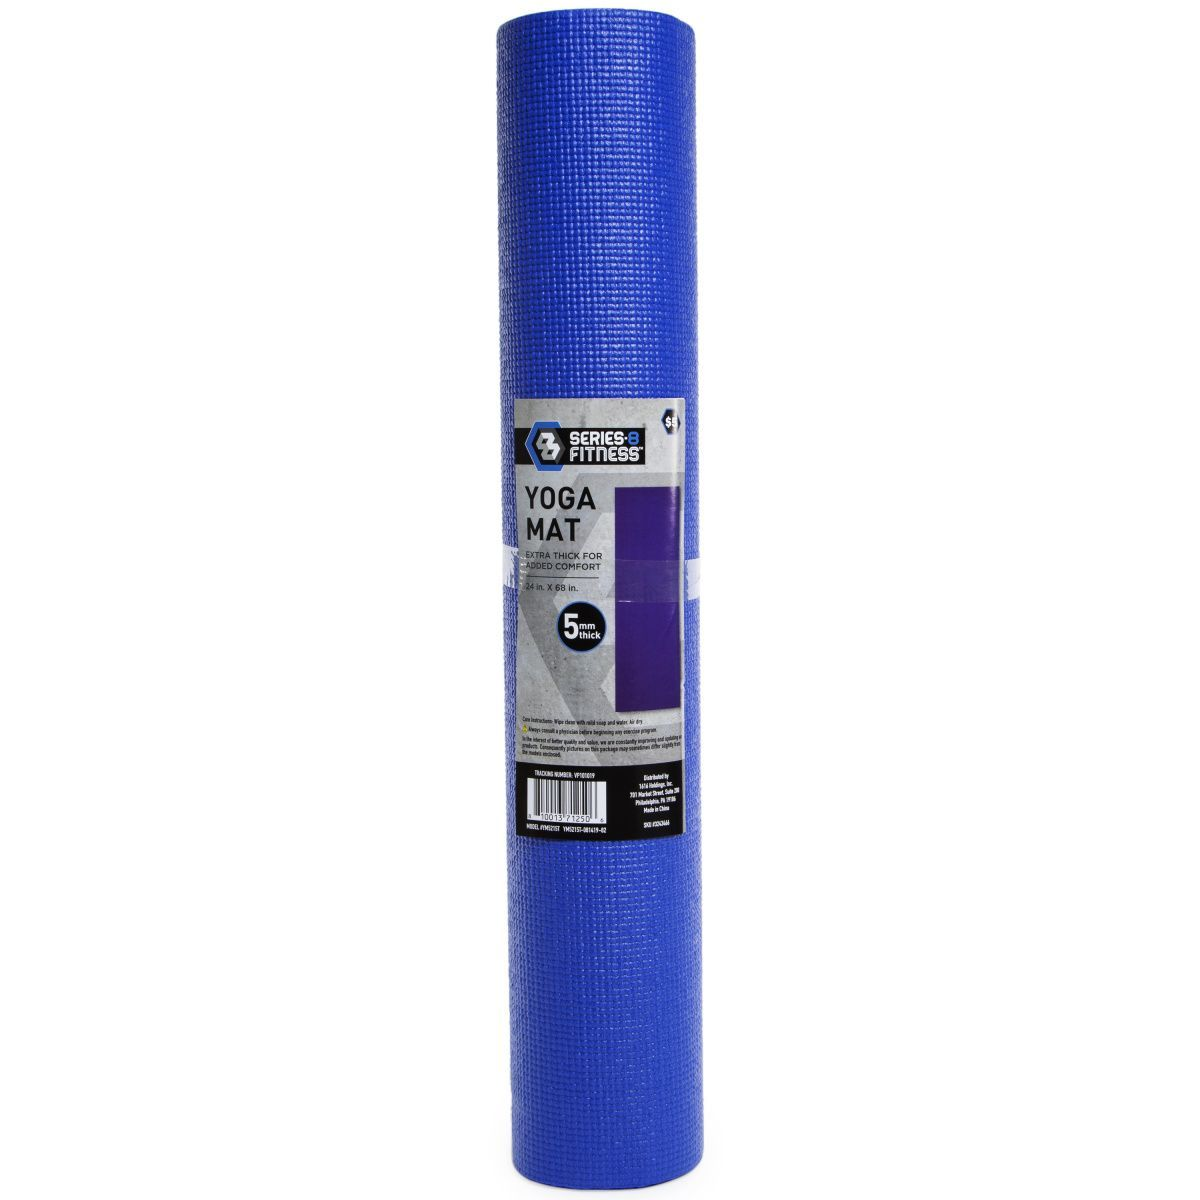 #24in #5mm #68in #Blue #Fitness #Mat #royal #series8 #Thick #Yoga series-8 fitness 5mm thick  yoga m...